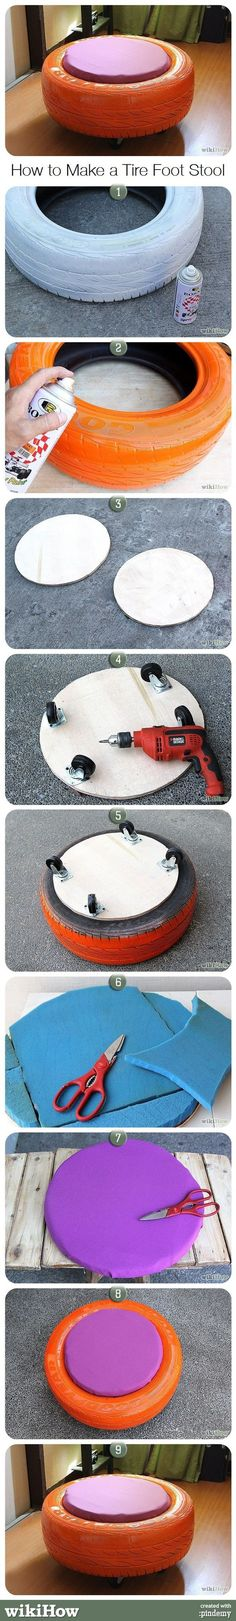 DIY project is always fun, especially if the project is environmental friendly and save your money.